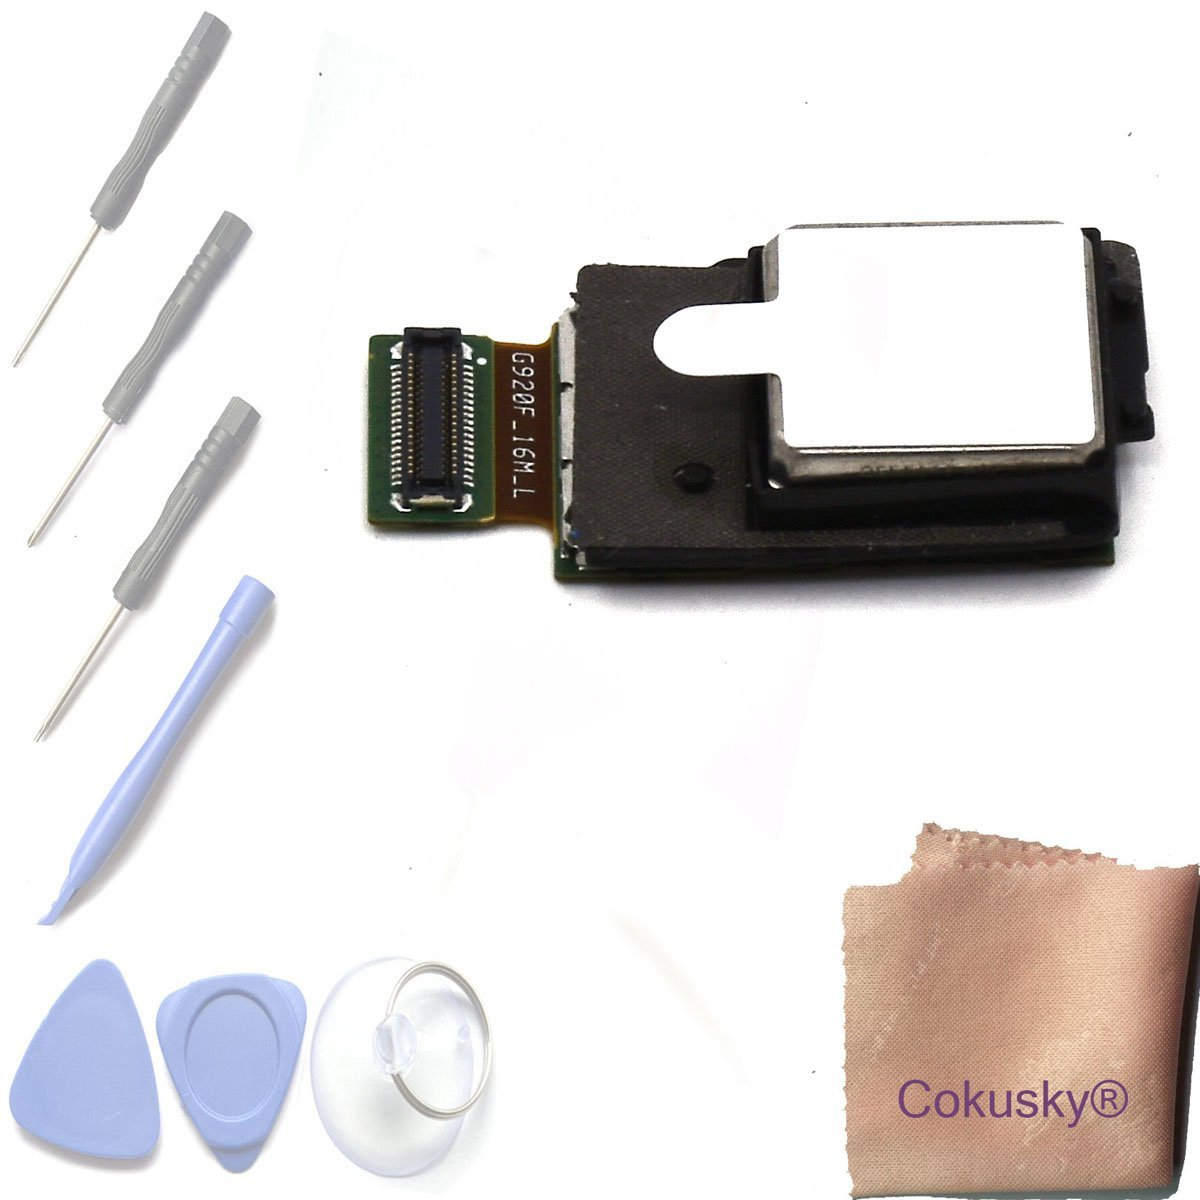 Cokusky Rear Face Main Back Camera Repair for Samsung Galaxy S6 EDGE G925A G925V G925P G925T+with Tools